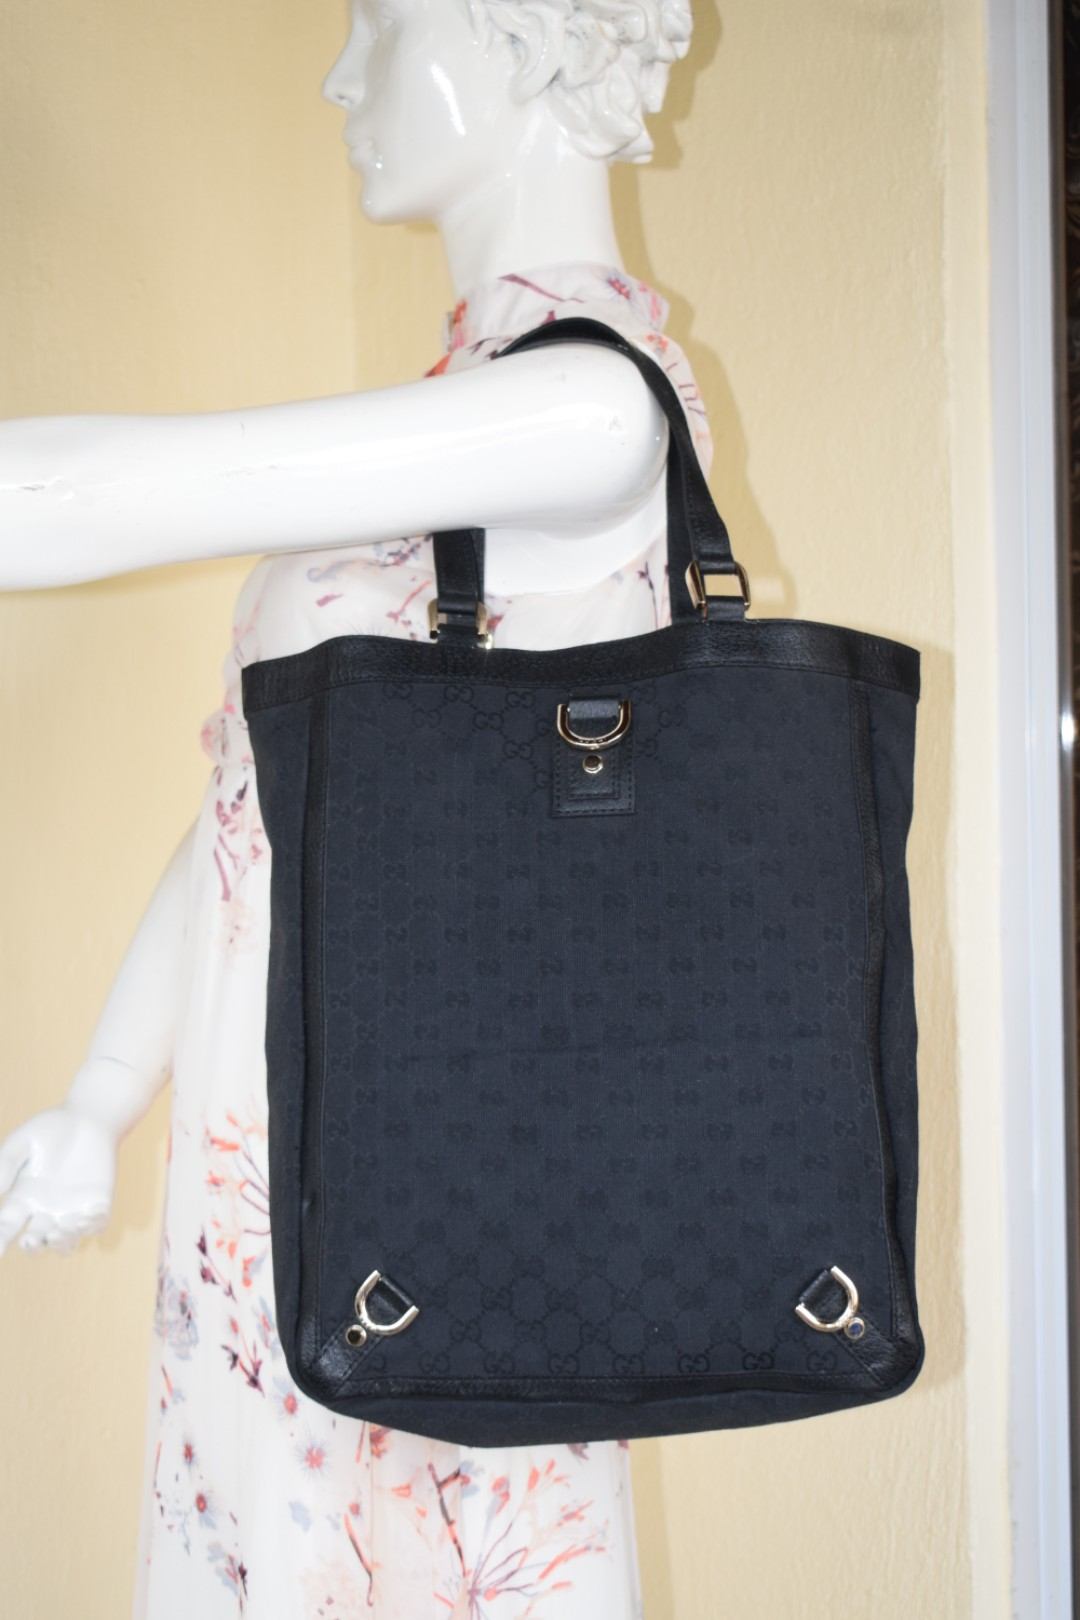 125be5cd40d Gucci GG Black Monogram Canvas Tote Bag